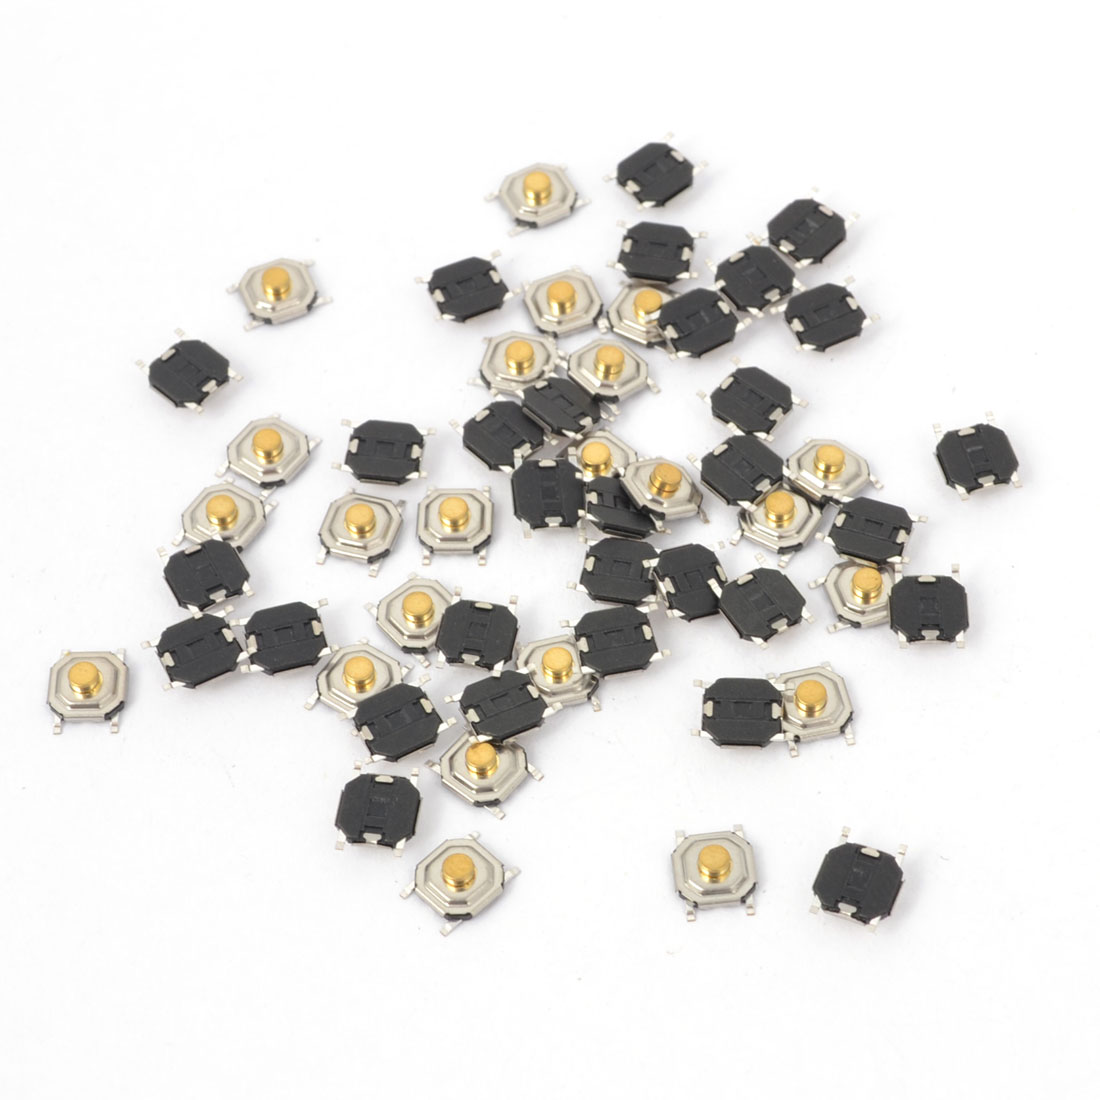 55Pcs Momentary Tact Tactile Push Button Switch 4mmx4mmx2mm 4-pin